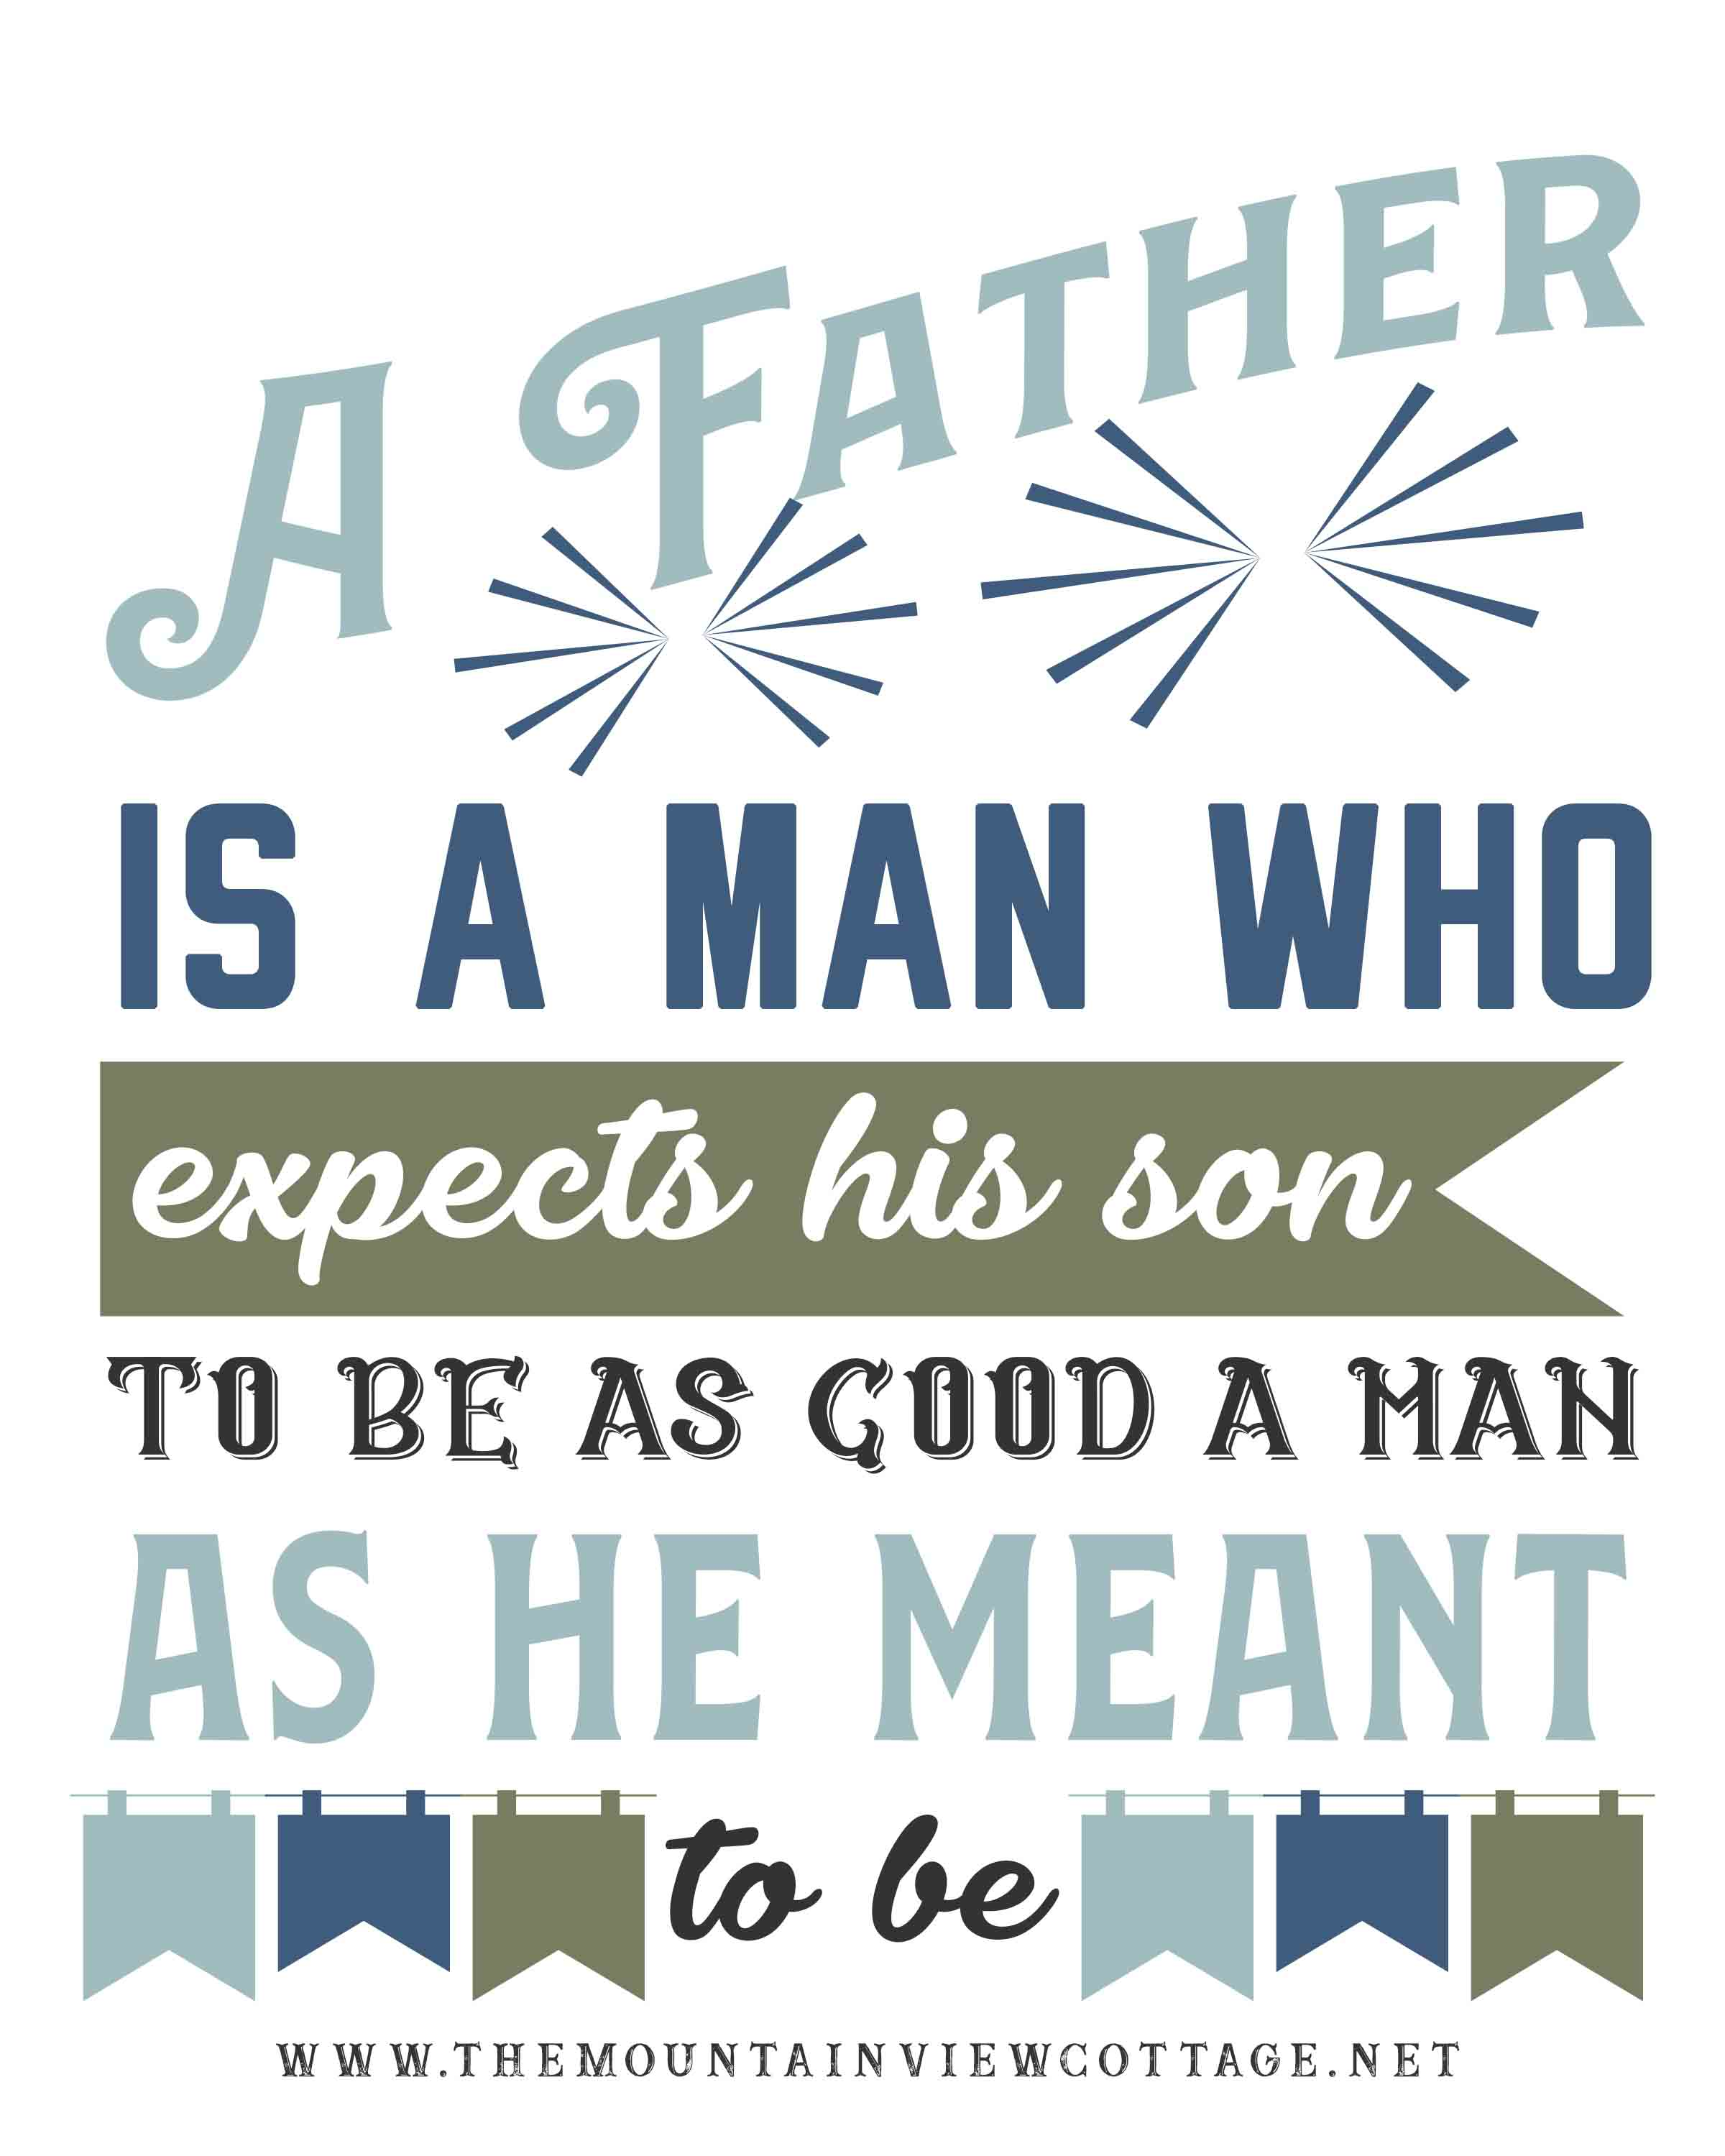 Dad quotes-Father quotes-inspirational dad quotes- Dad quotes from son-a Father is someone who expects his son to be as good a man as he meant to be